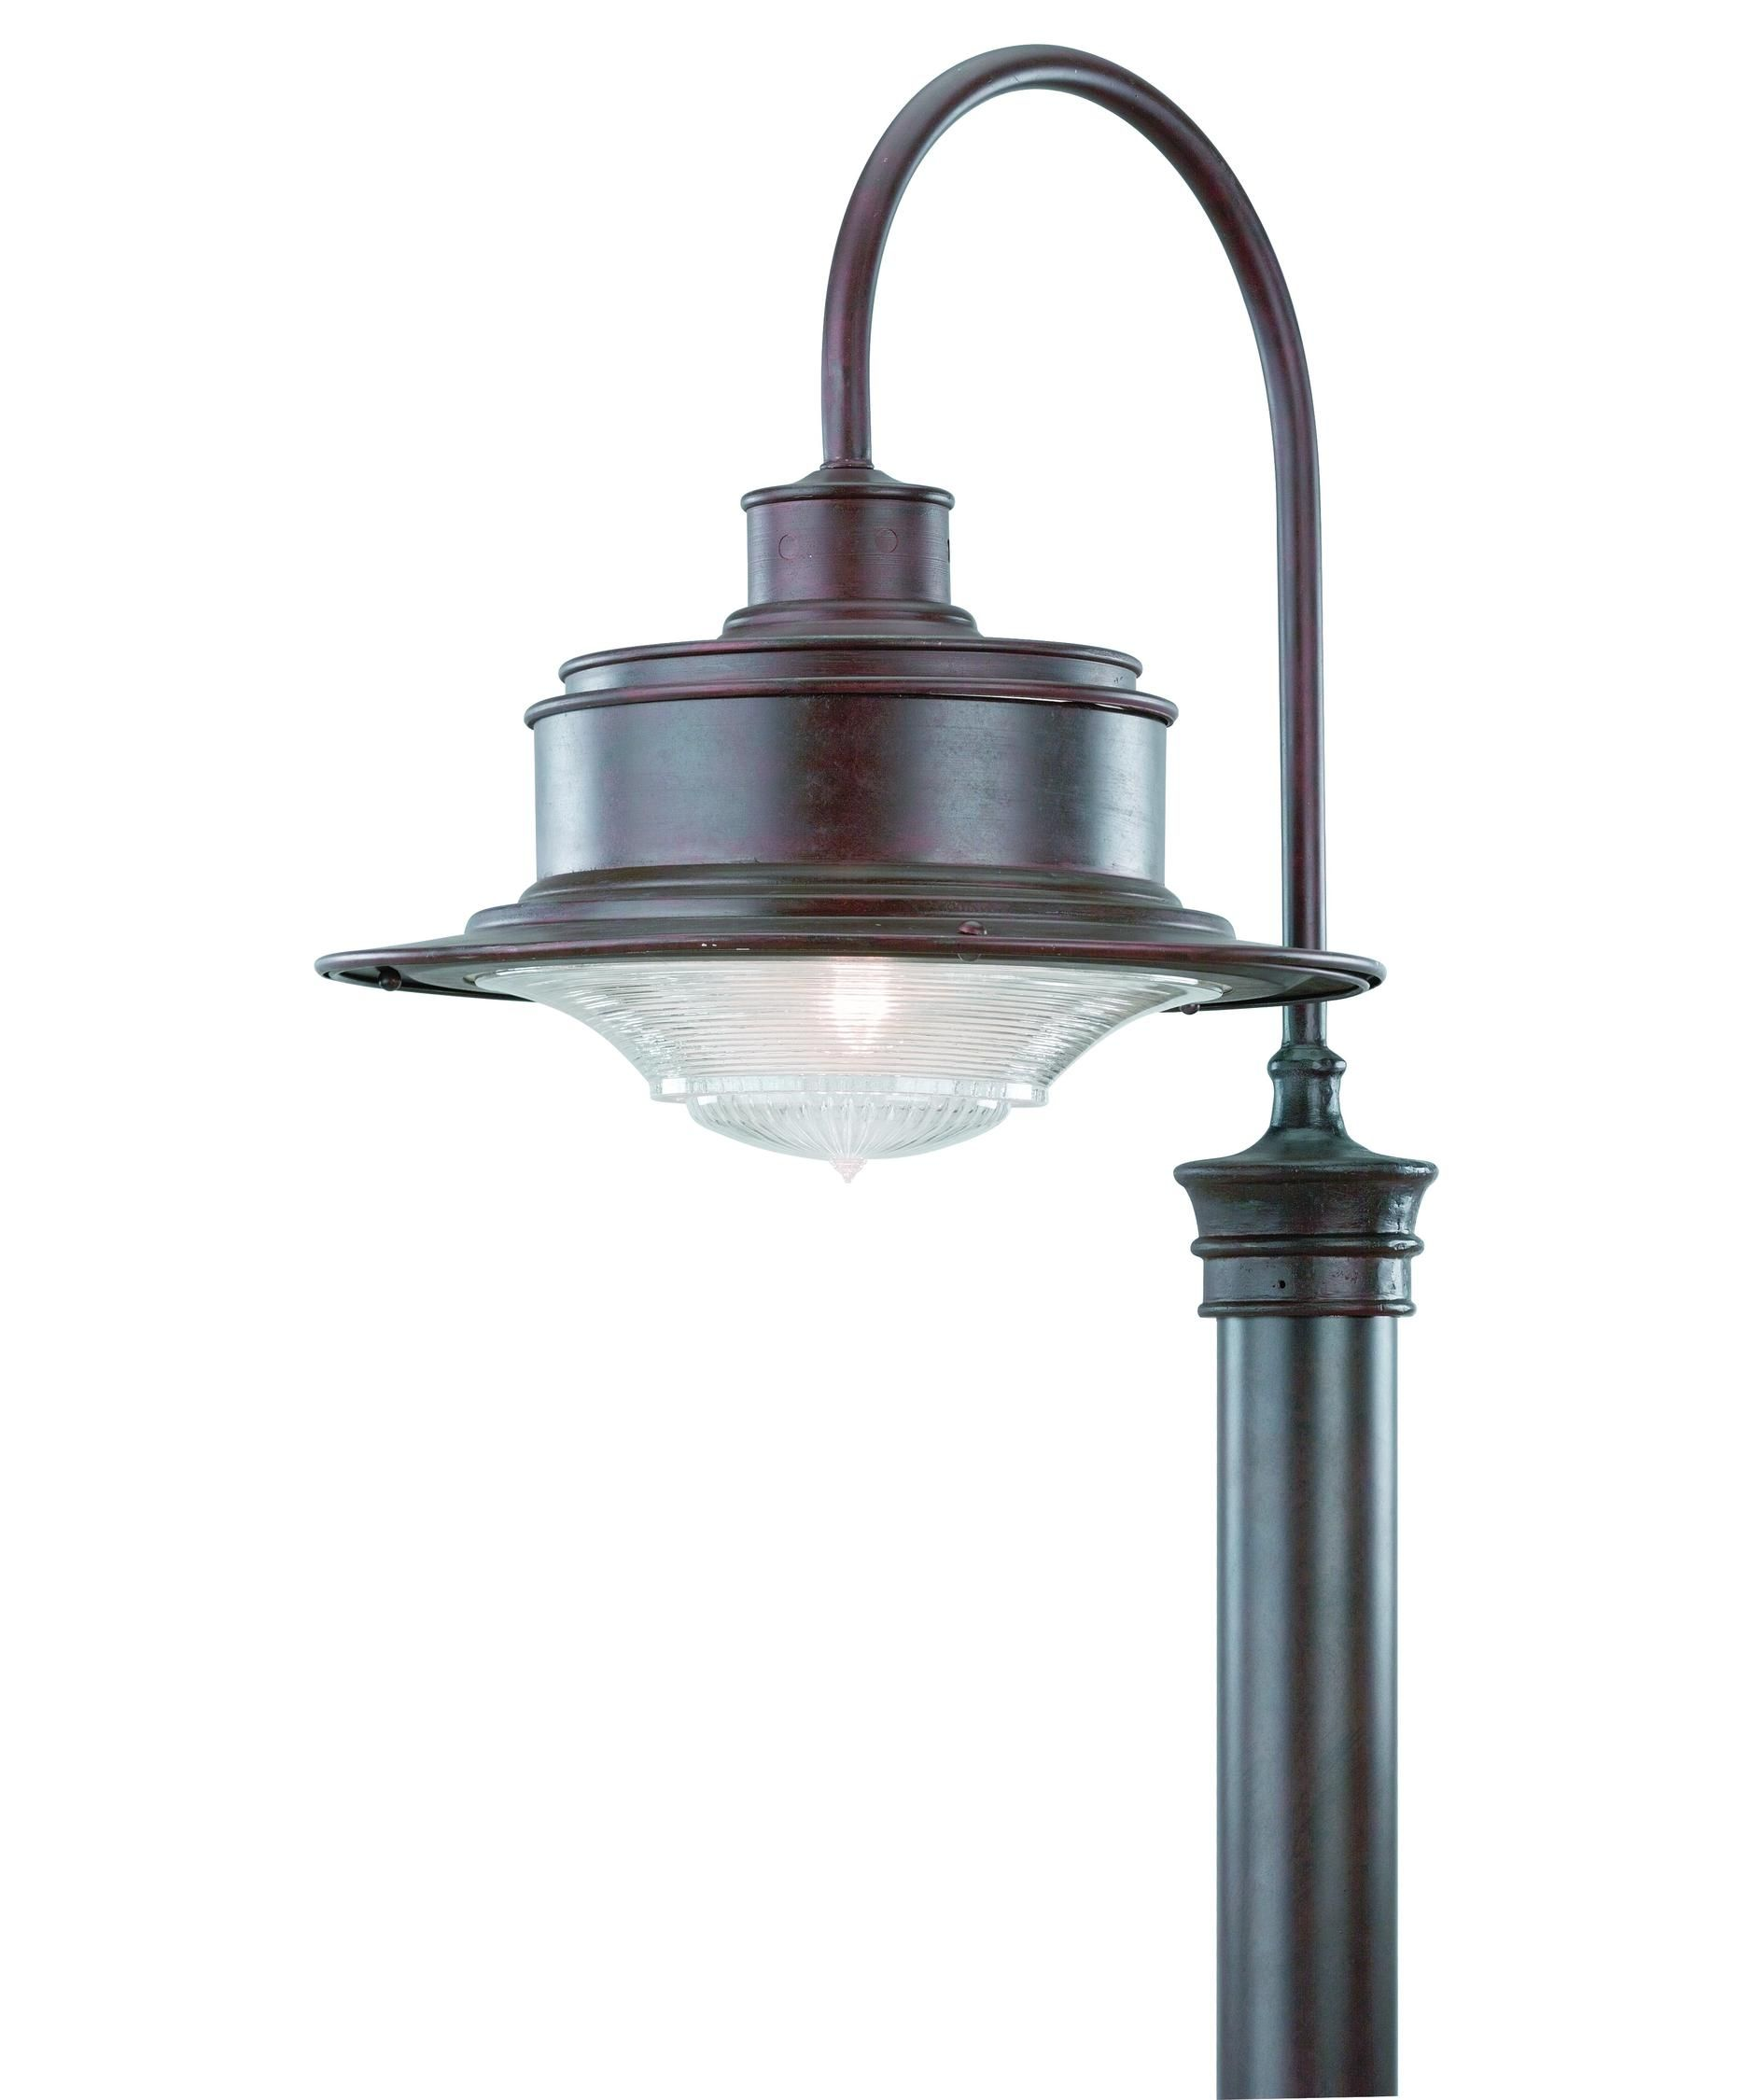 Troy lighting p9394 south street 1 light outdoor post lamp outdoor troy lighting p9394 south street 1 light outdoor post lamp arubaitofo Gallery